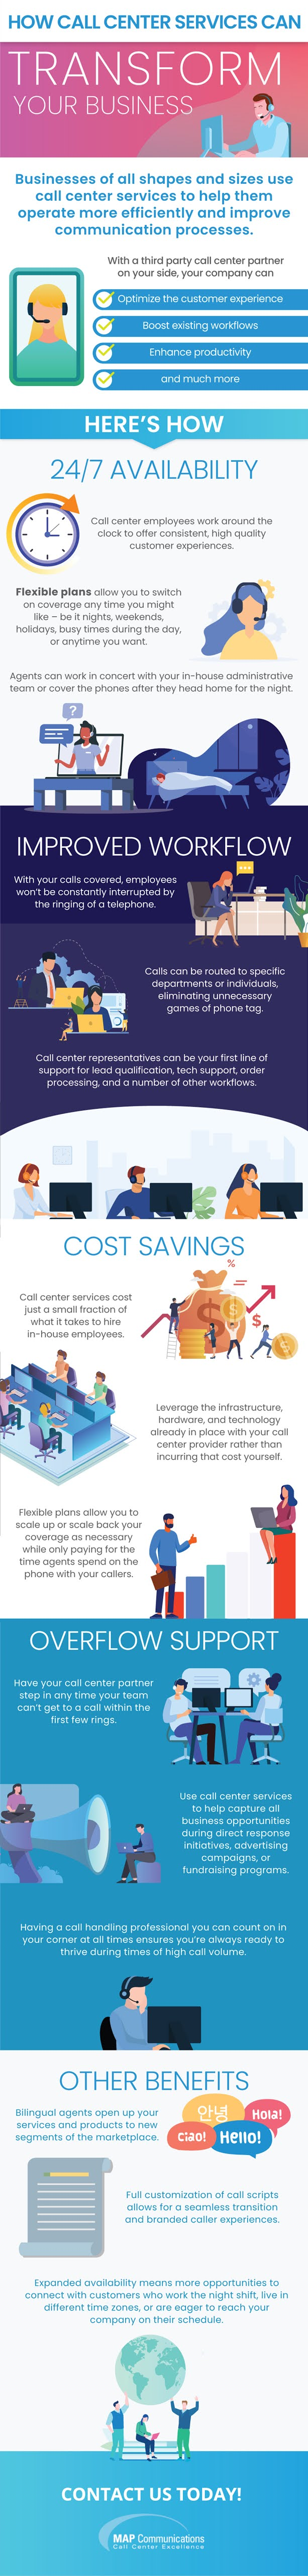 How Call Center Services Can Transform Your Business #infographic #Call Center Services #infographics #Call Center #Business